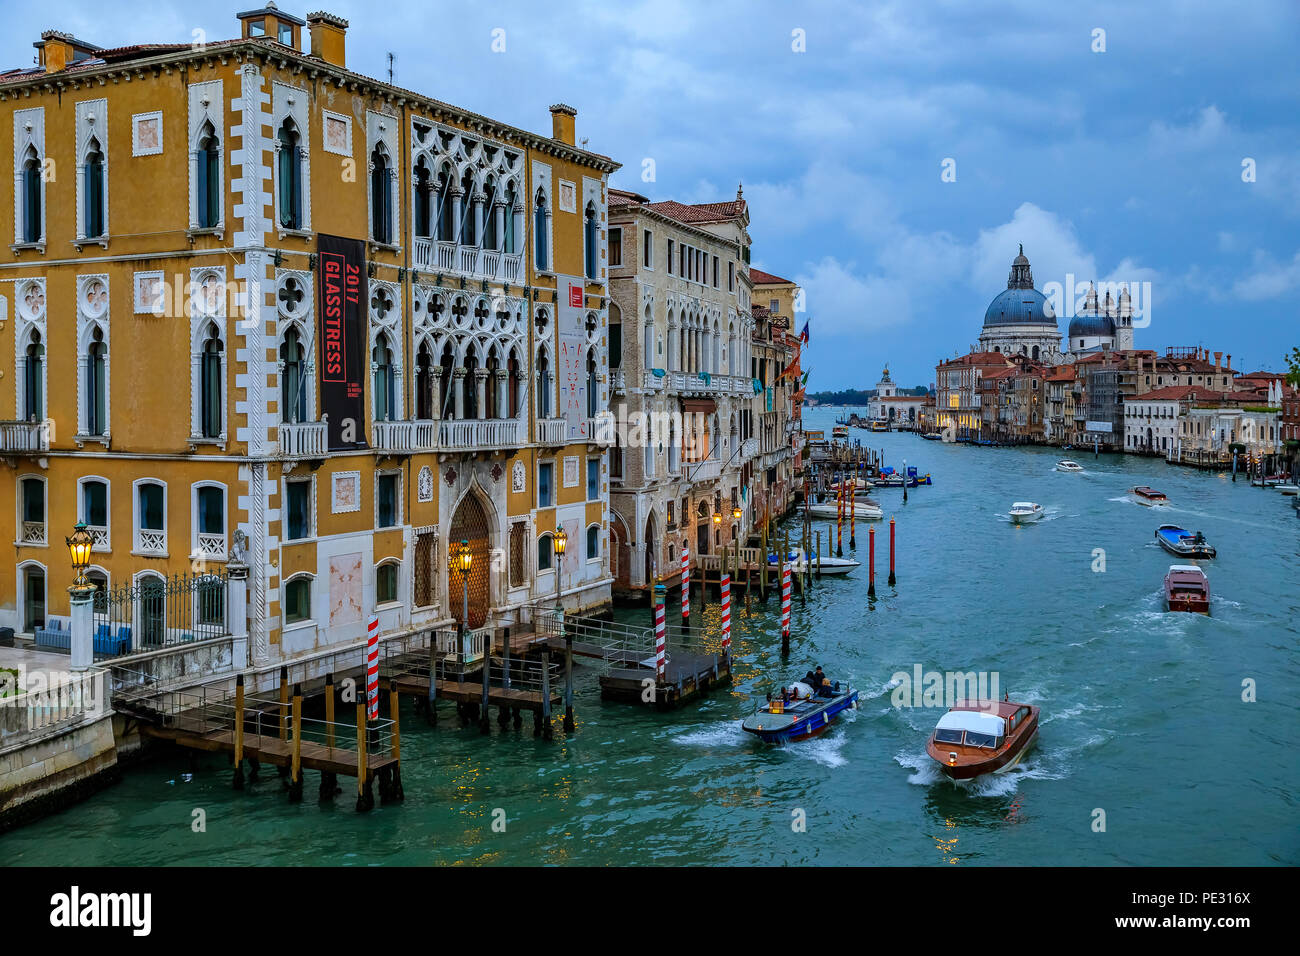 Venice, Italy - September 24, 2017: Sunset at the iconic 17th-century Santa Maria di Salute Basilica, view from Academia bridge or Puente de la academ Stock Photo